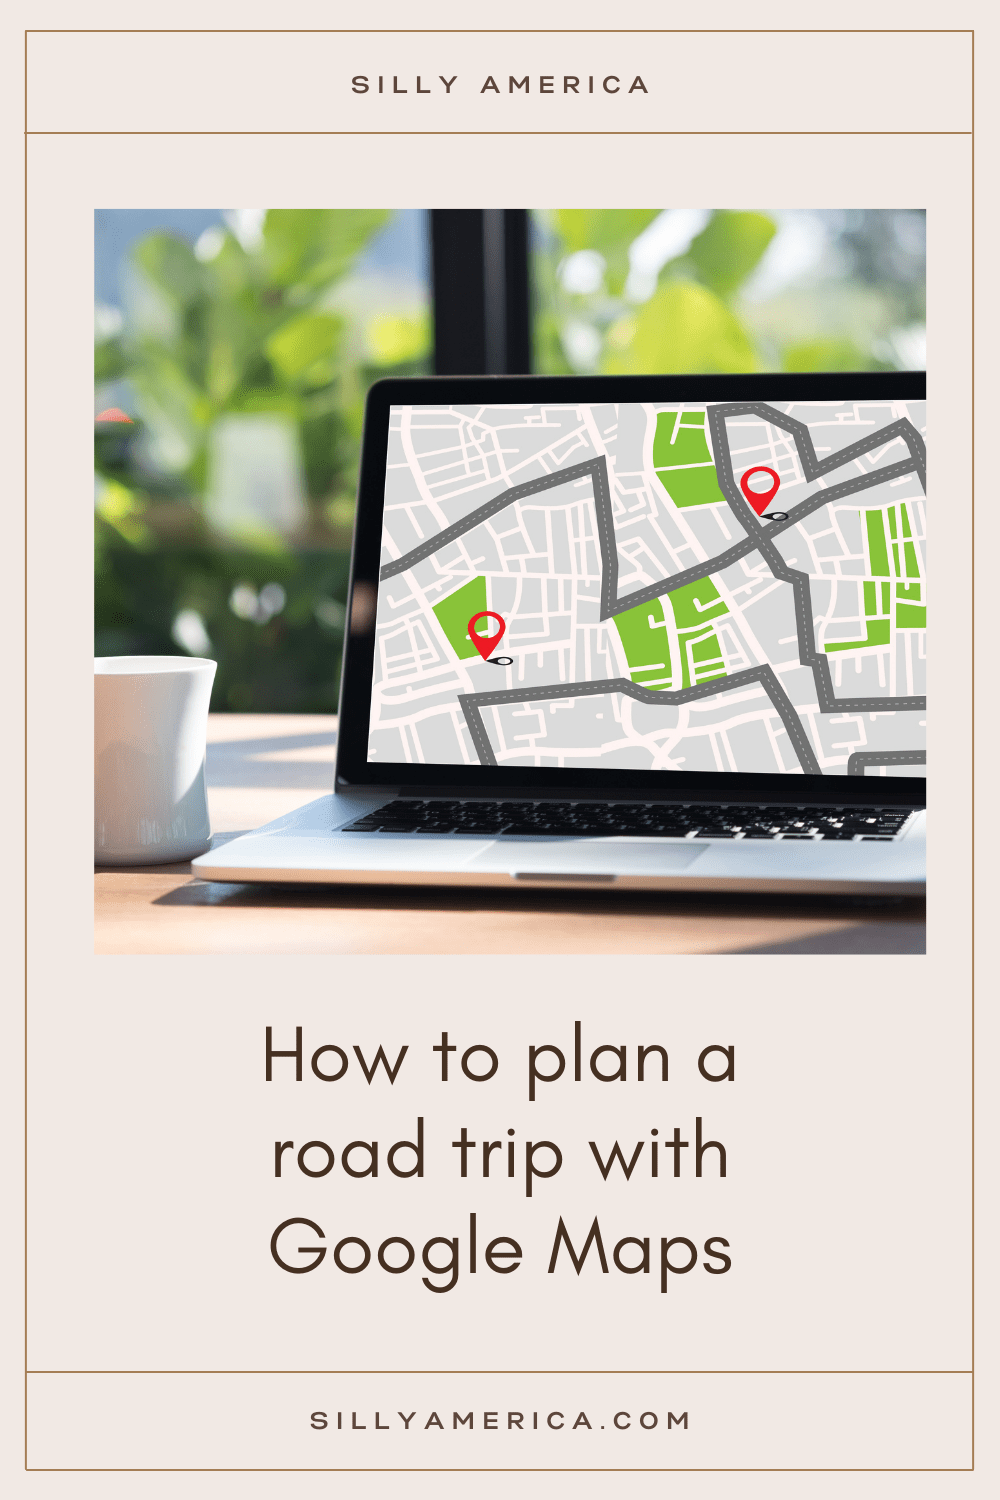 The best method for how to plan a road trip with Google Maps and spreadsheets to plot your road trip route and get directions on your phone. Planning a road trip in Google Maps is easy, allows you to creatively see all your stops, and you can load your road trip map on your phone for easy directions. It's road trip planning made easy! #RoadTripPlanning #RoadTripPlanningTips #RoadTripPlanningMap #RoadTripPlanningList #RoadTripPlanningApp #RoadTripRoute #PlanARoadTrip #GoogleMaps